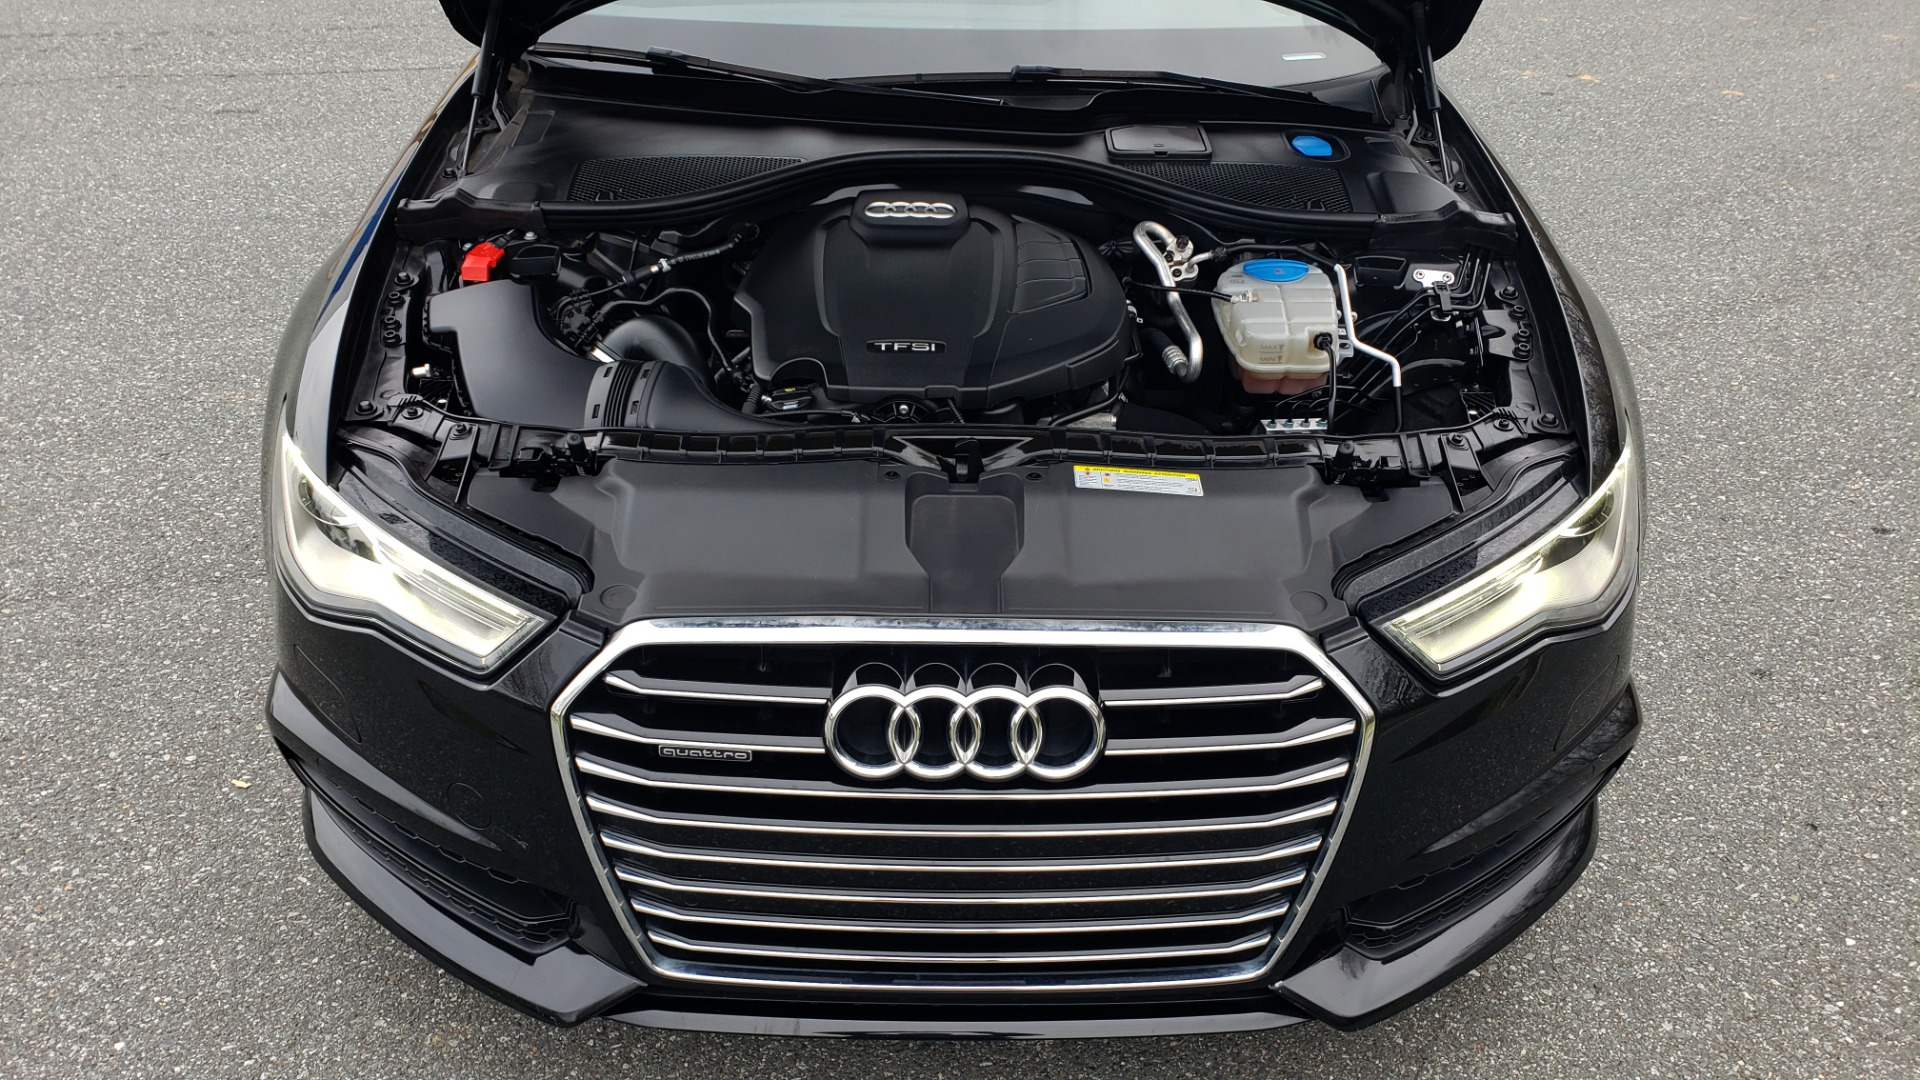 Used 2017 Audi A6 PREMIUM PLUS / NAV / SUNROOF / BOSE / CLD WTHR for sale Sold at Formula Imports in Charlotte NC 28227 11